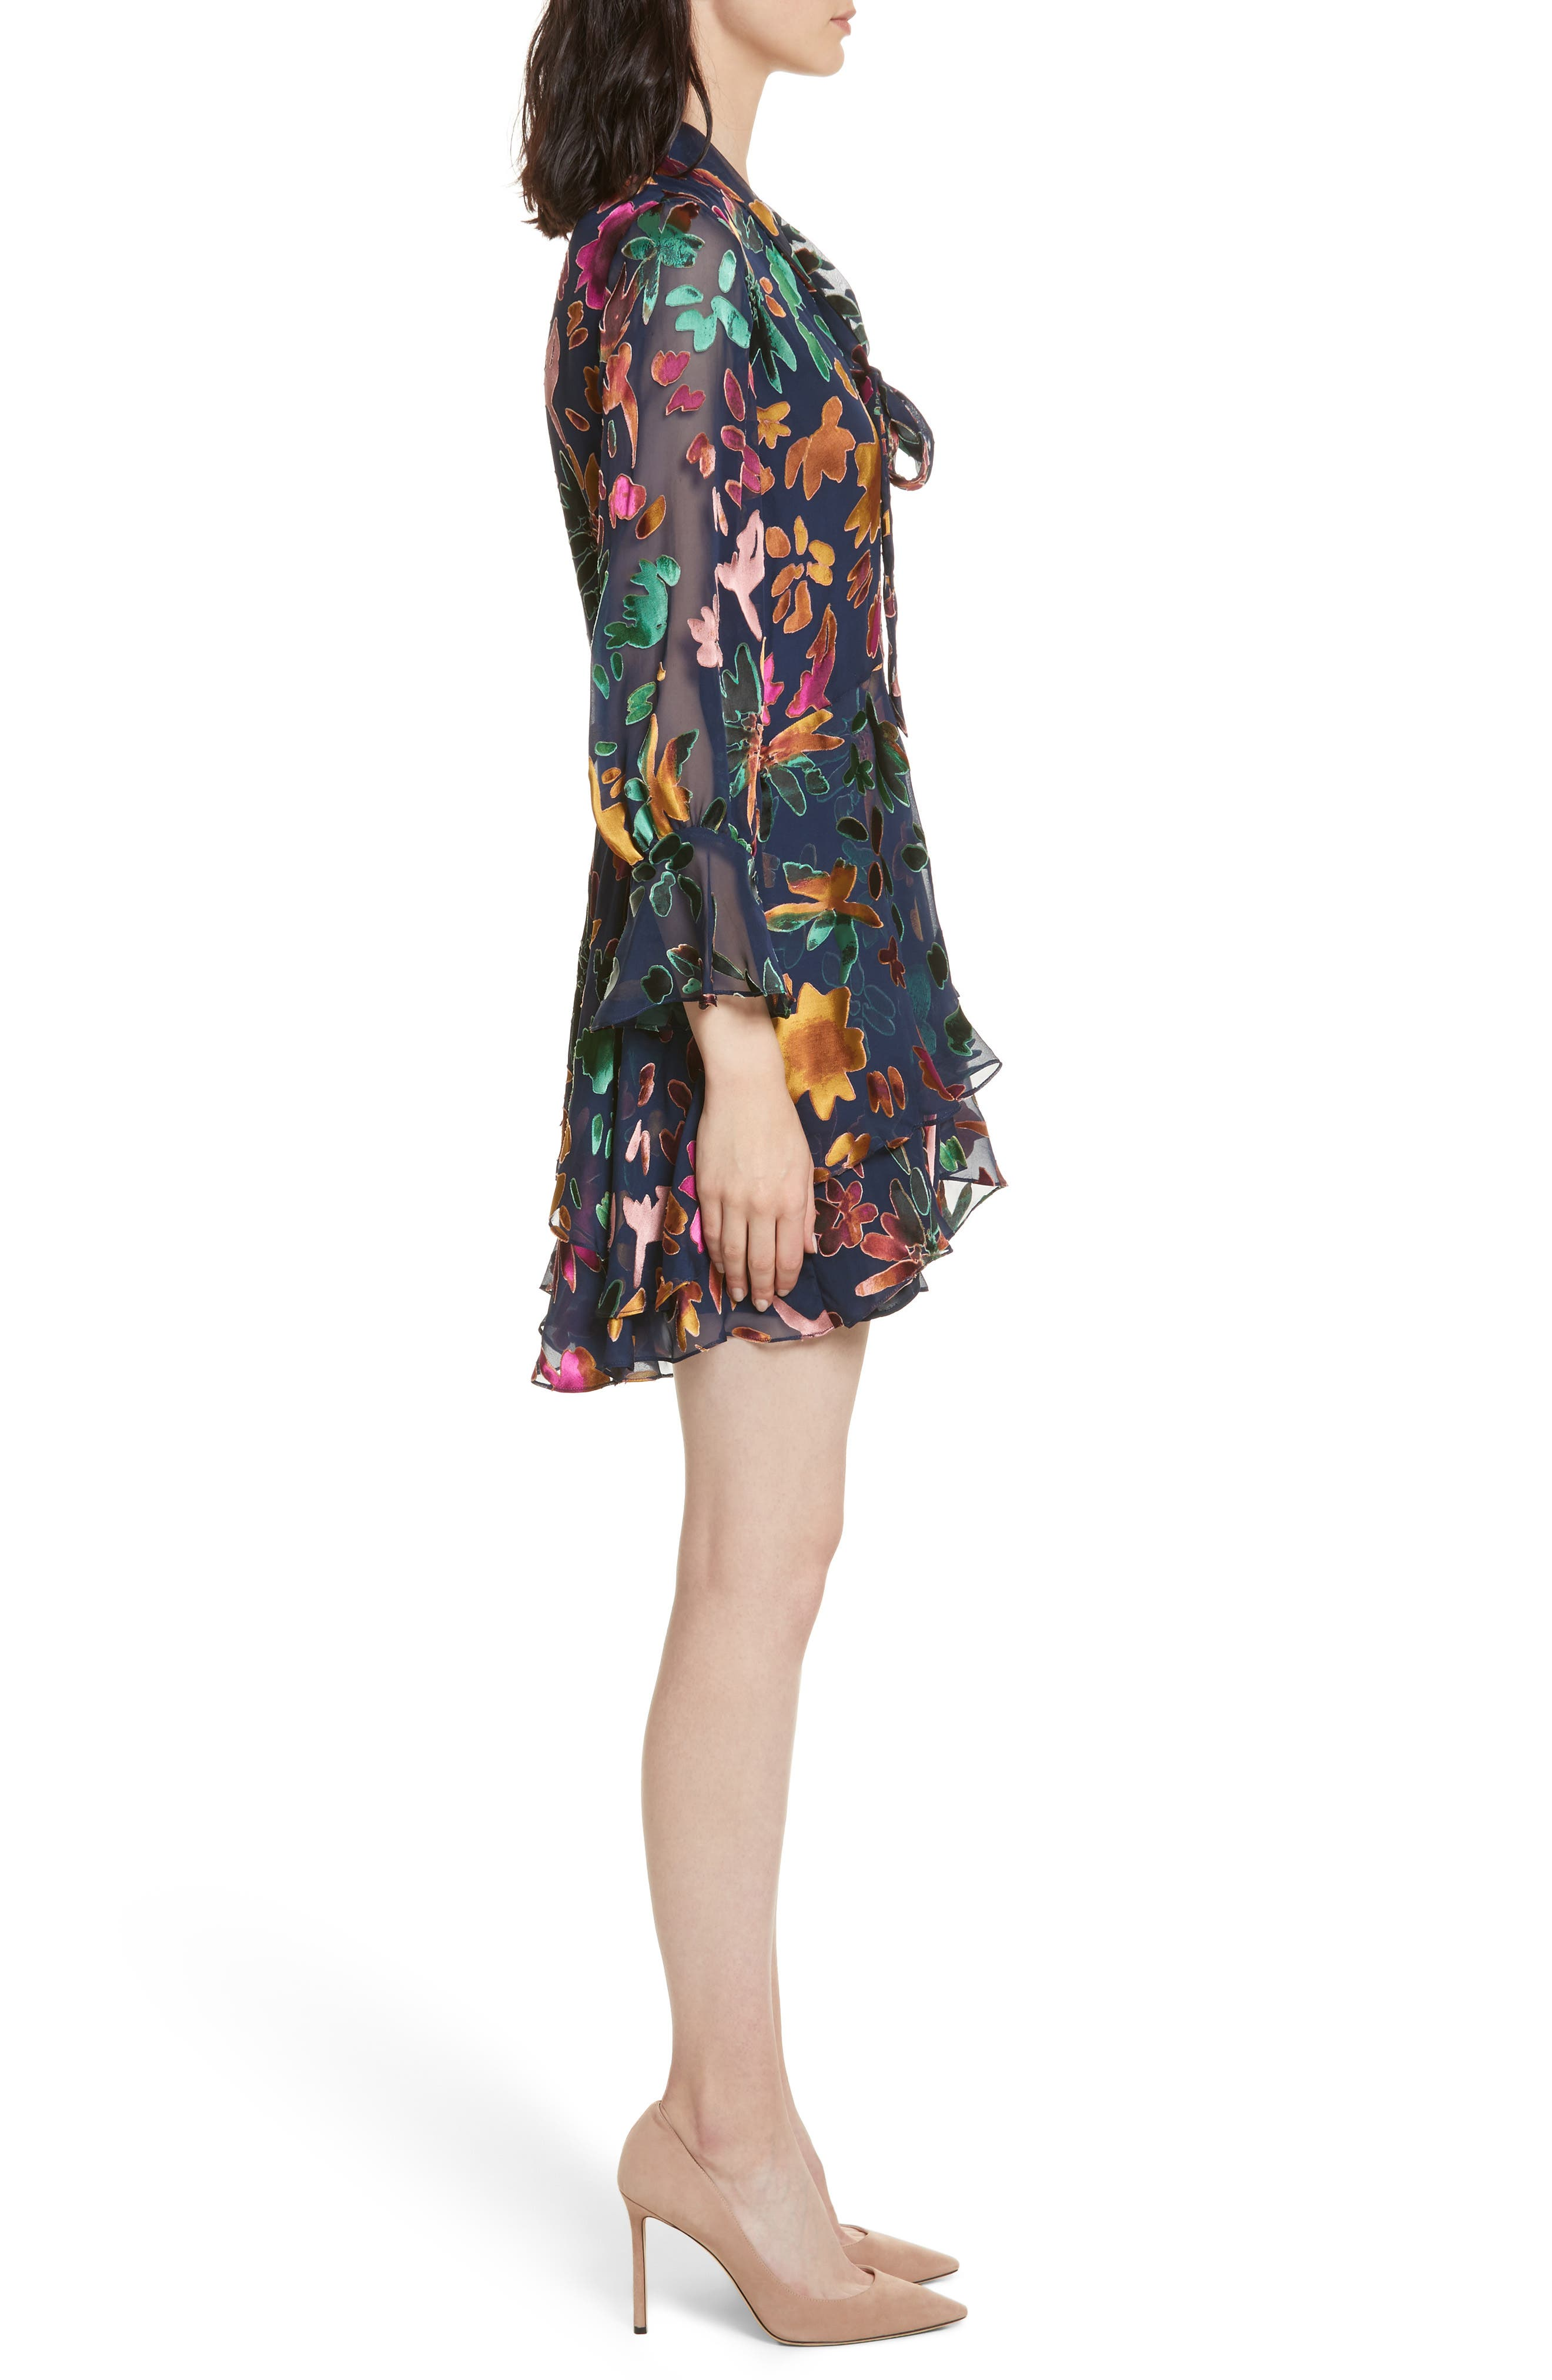 Moore Layered Skirt Tunic Dress,                             Alternate thumbnail 3, color,                             Prisma Floral Sapphire